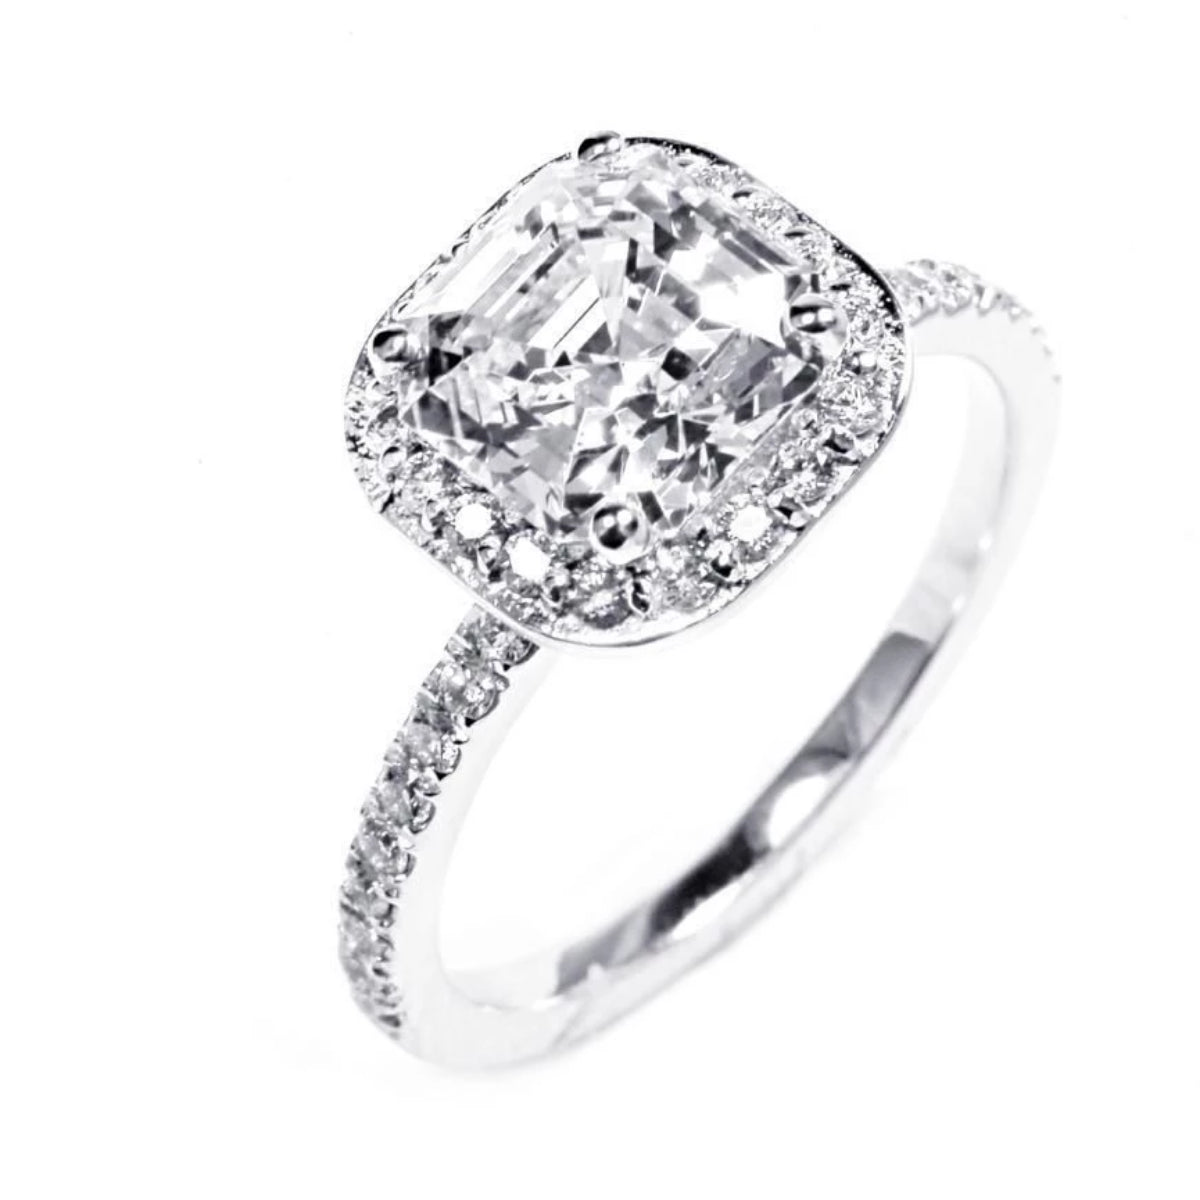 ring setting diamondland carat jewelry rings diamond